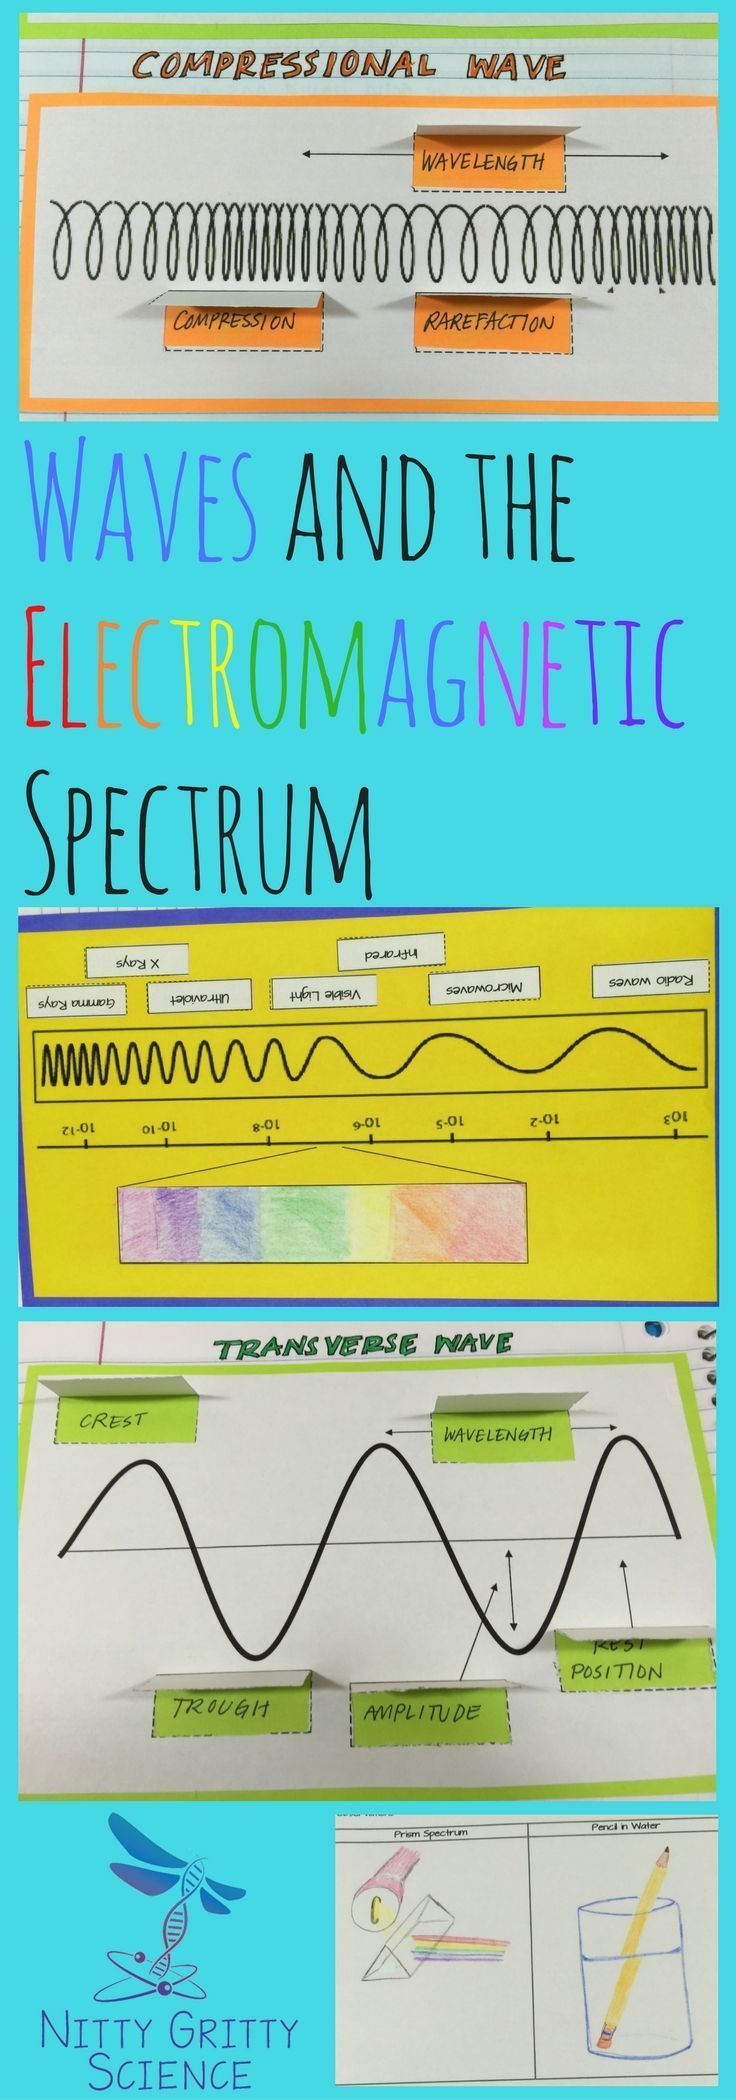 Waves And The Electromagnetic Spectrum Physical Science Interactive